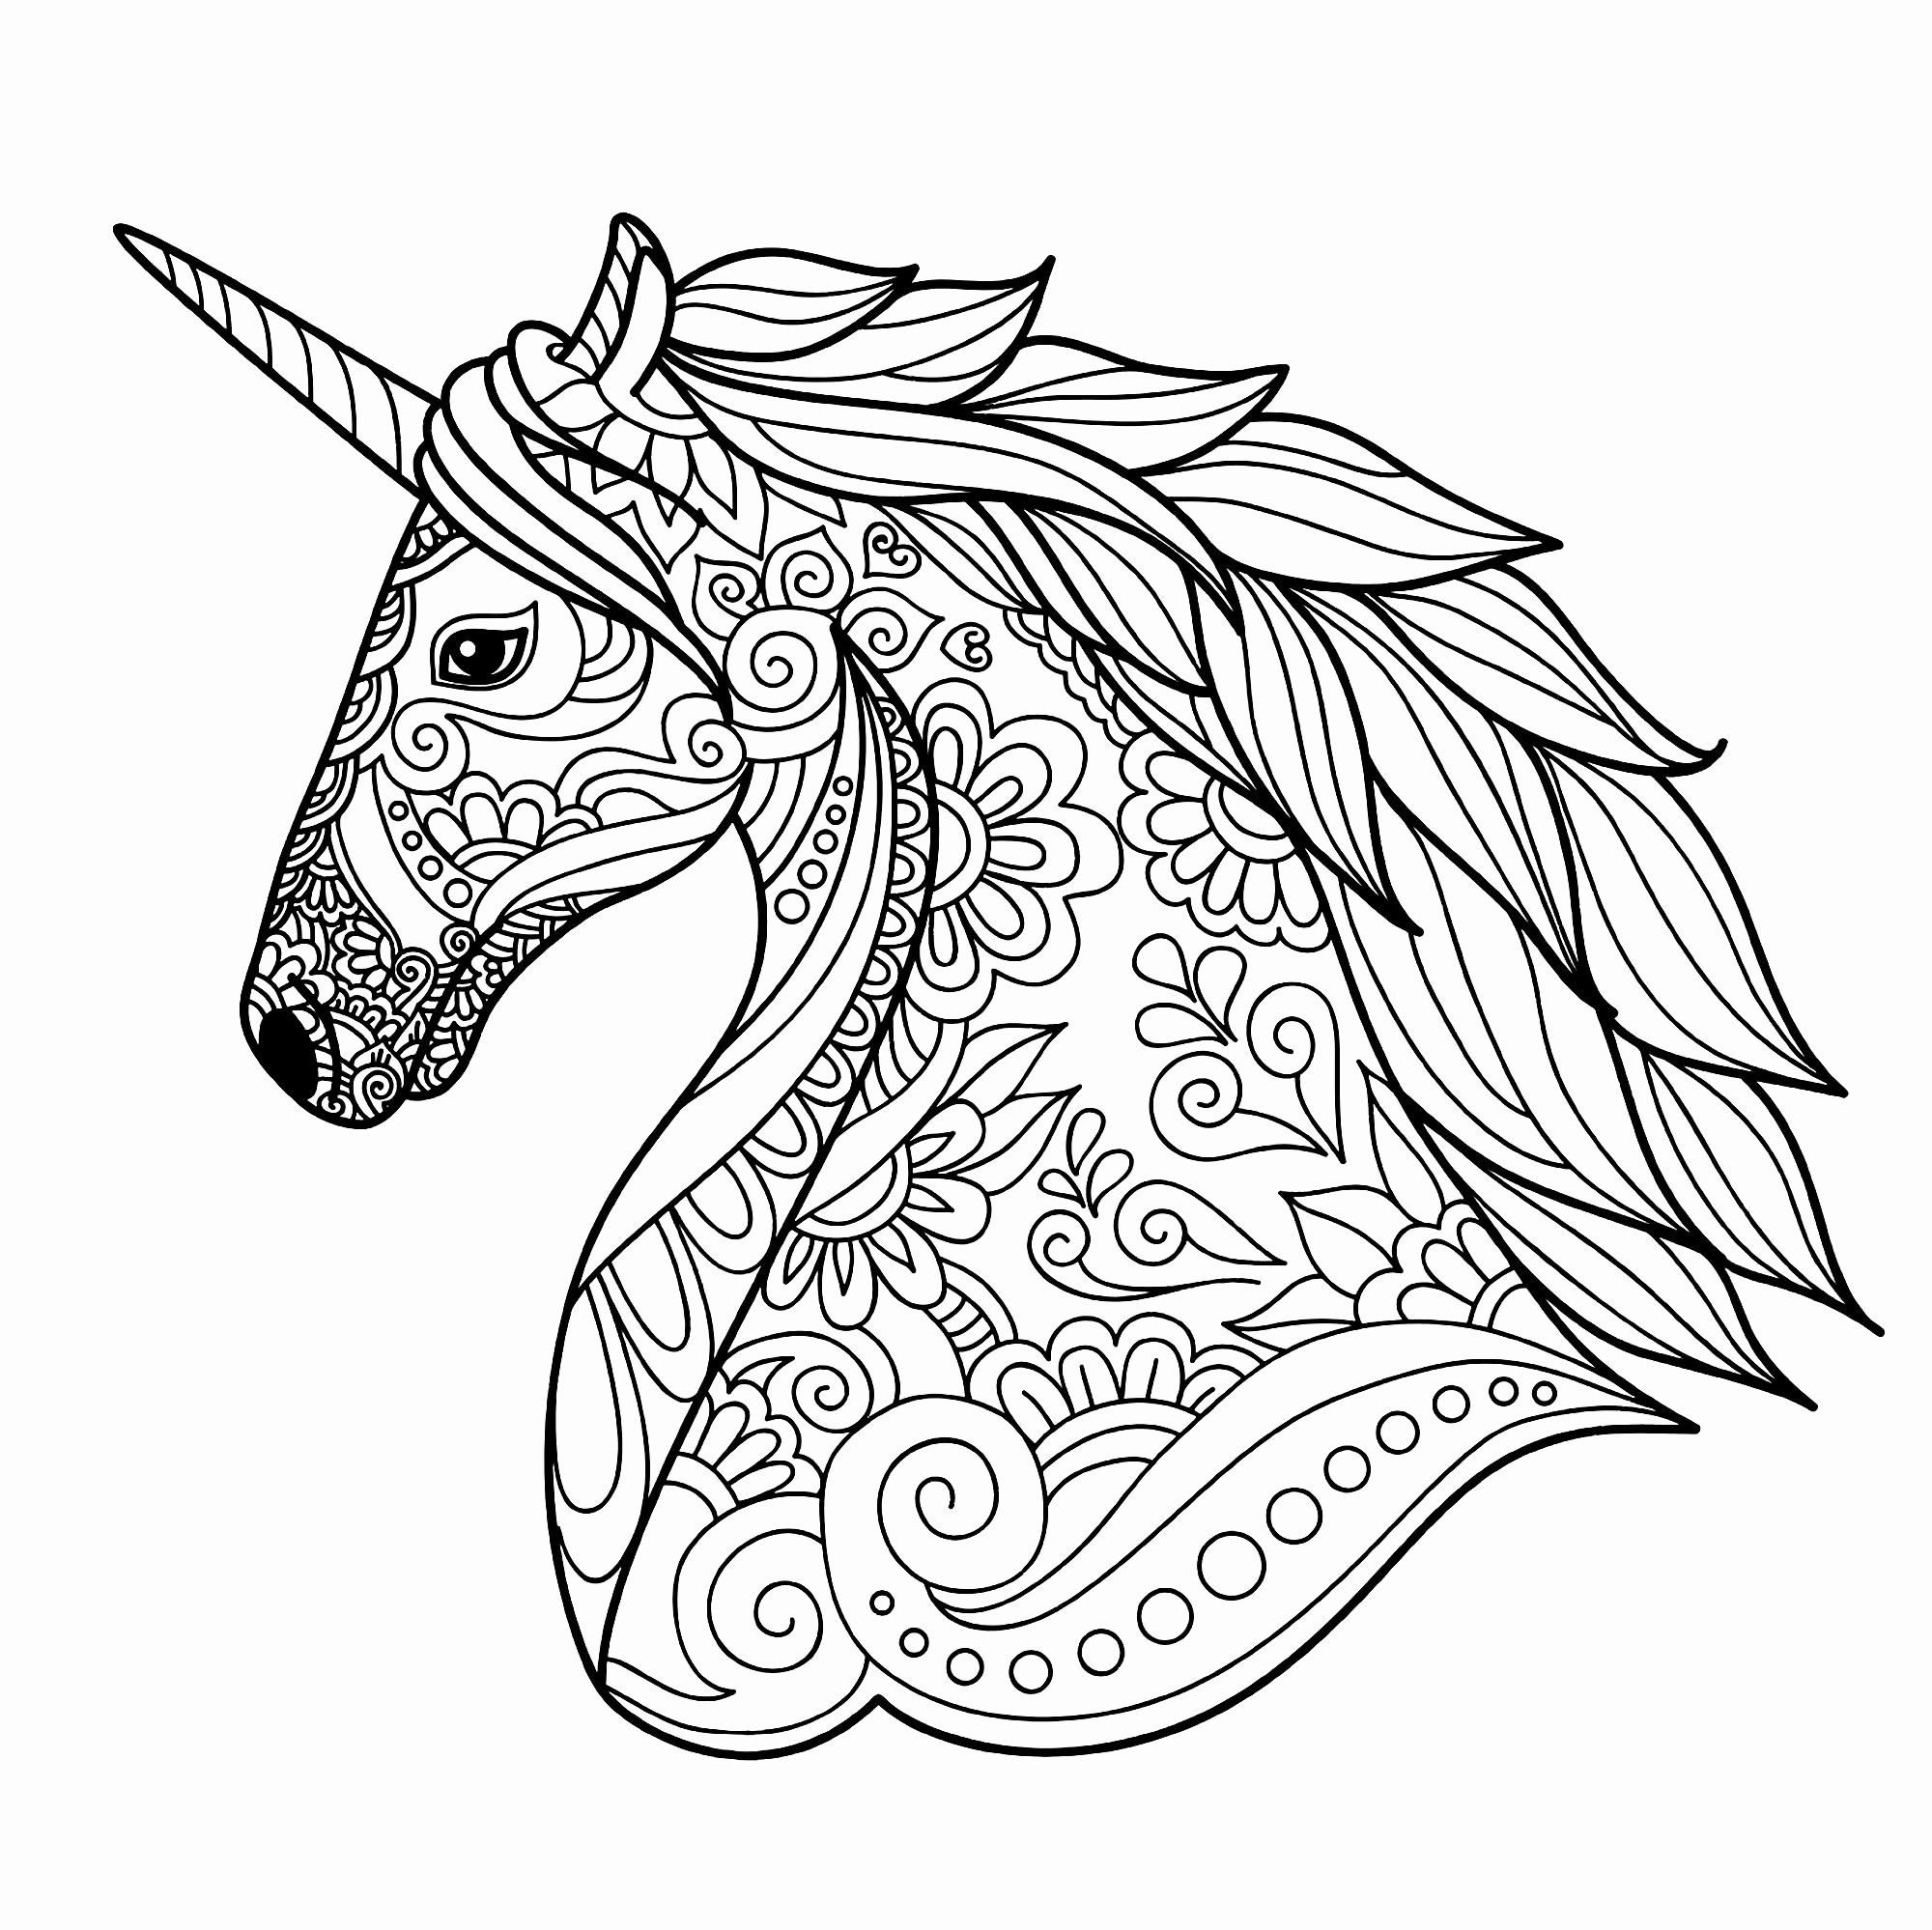 Cartoons Coloring Pages Pdf Beautiful Cartoon Coloring Page Rainbow And Hearts Colorful Unic Unicorn Coloring Pages Animal Coloring Pages Animal Coloring Books